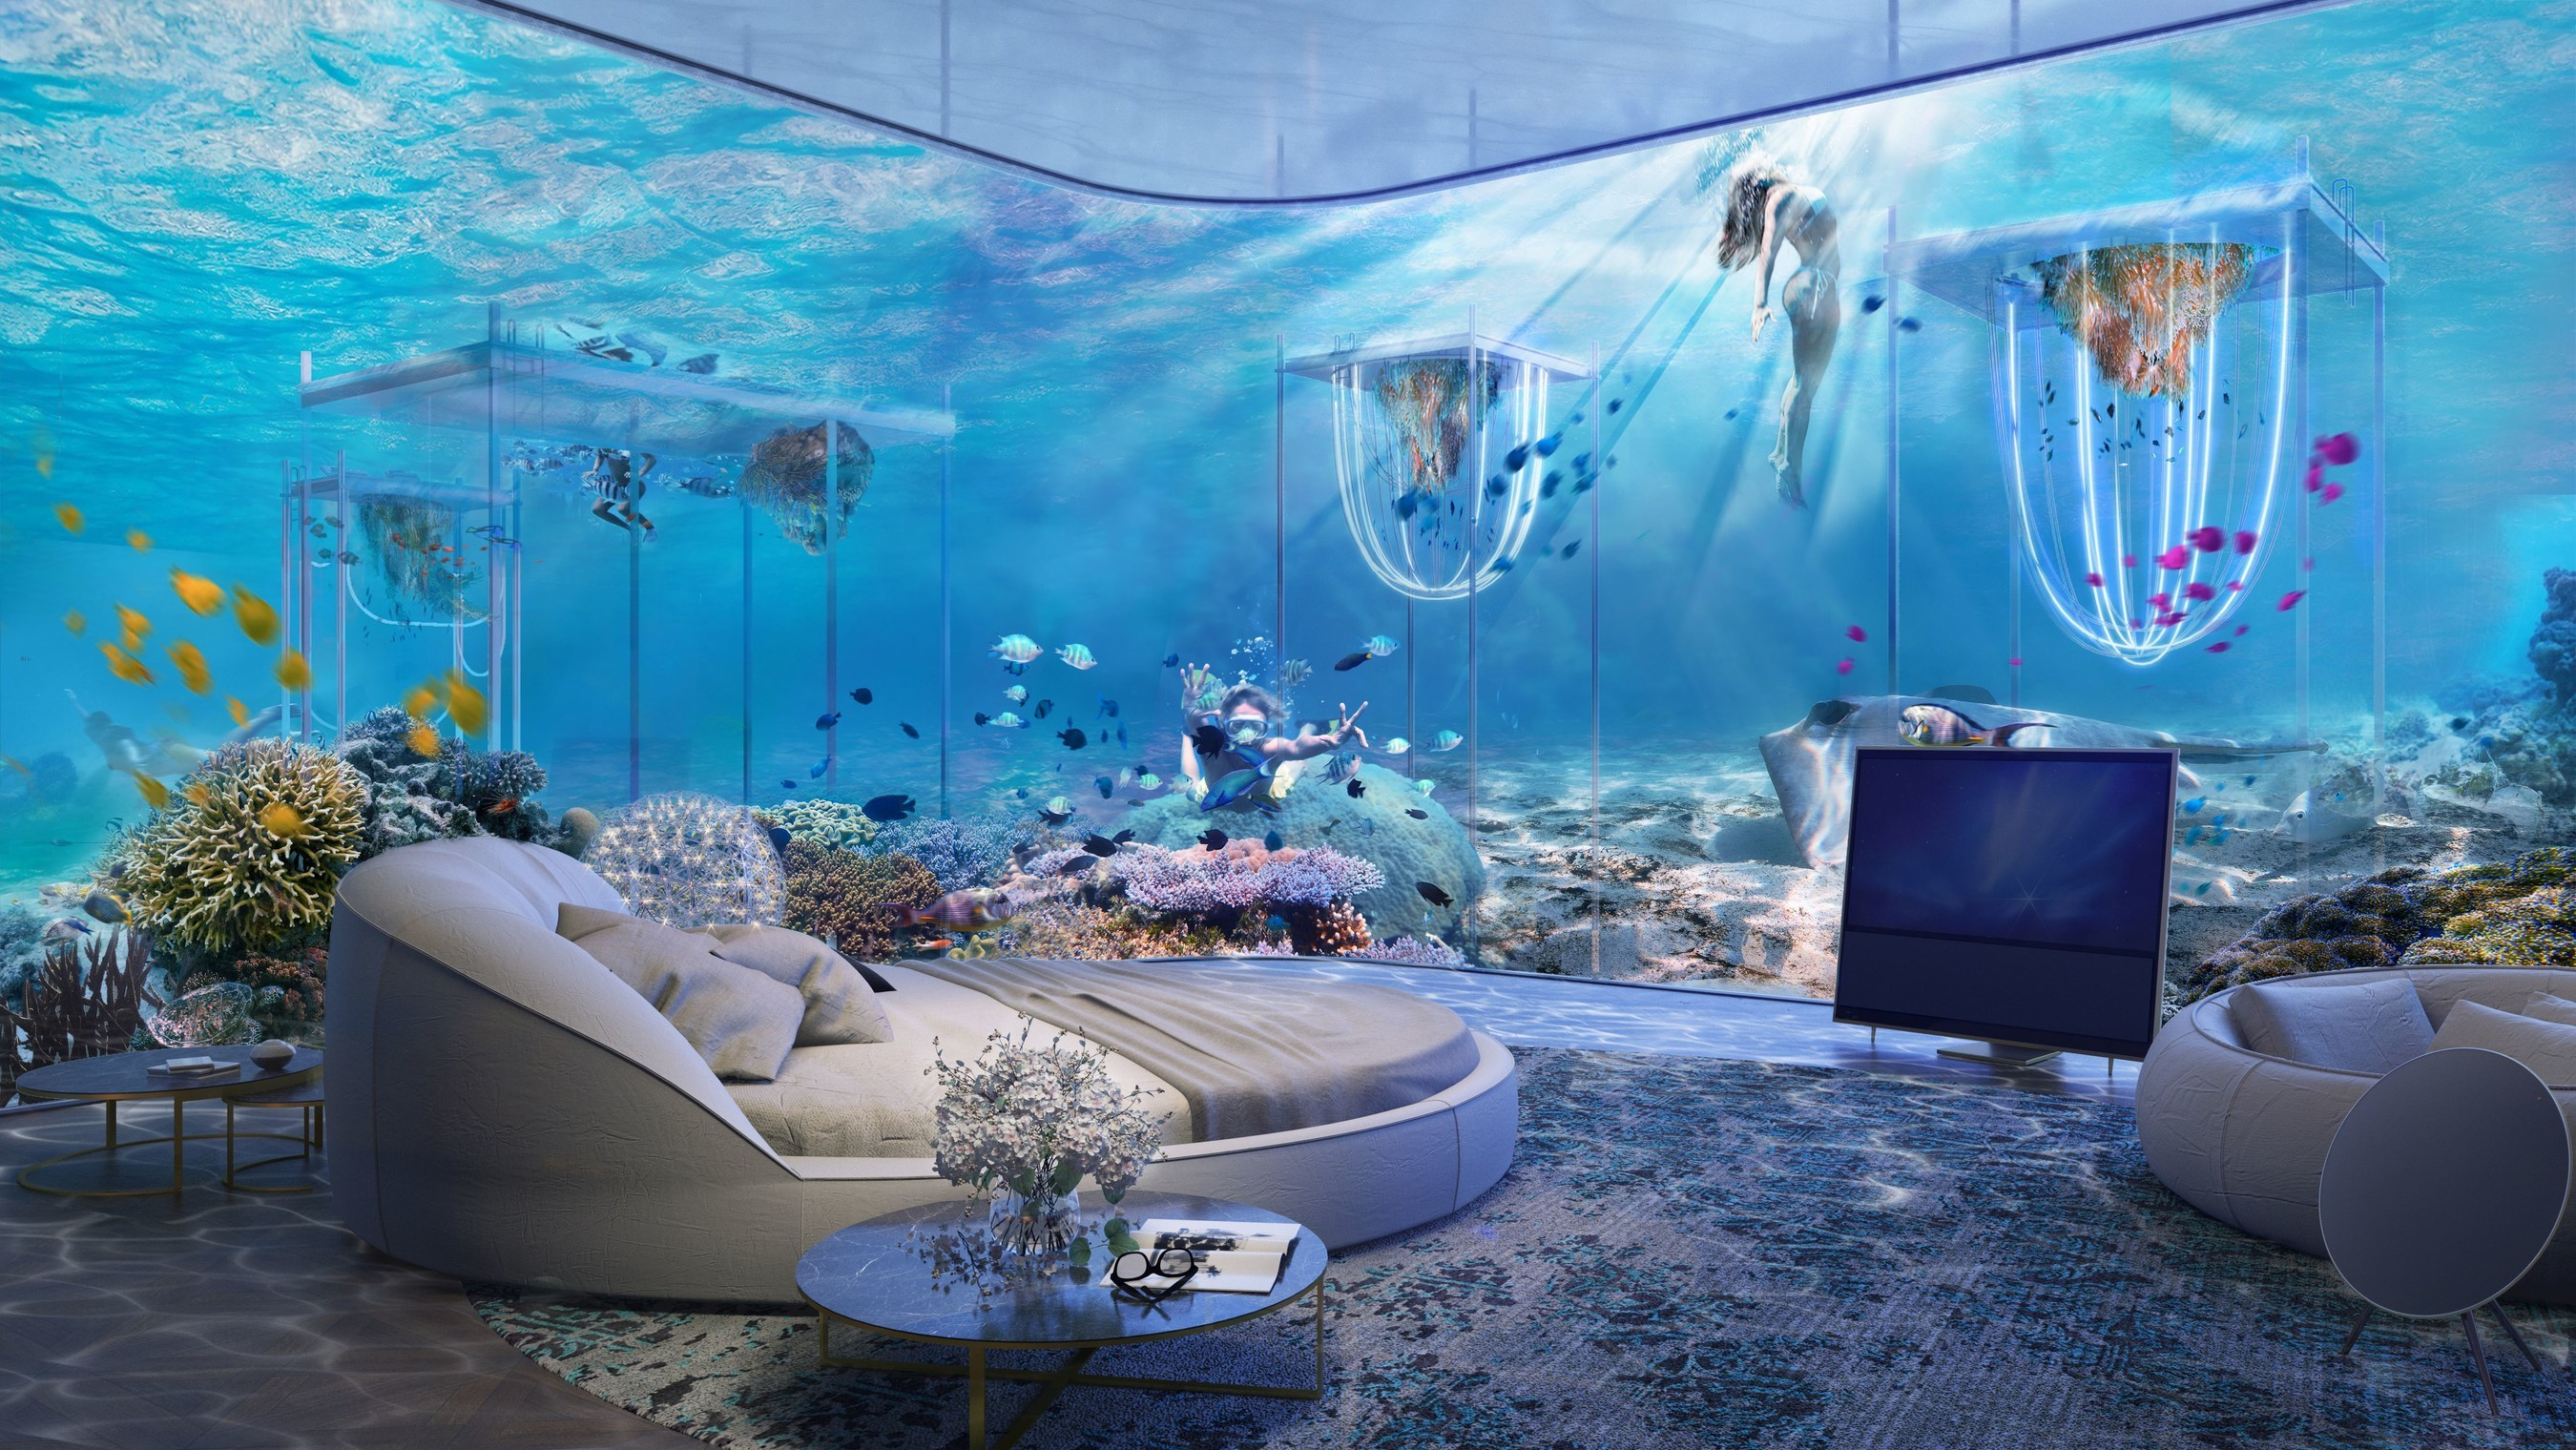 The Underwater Room